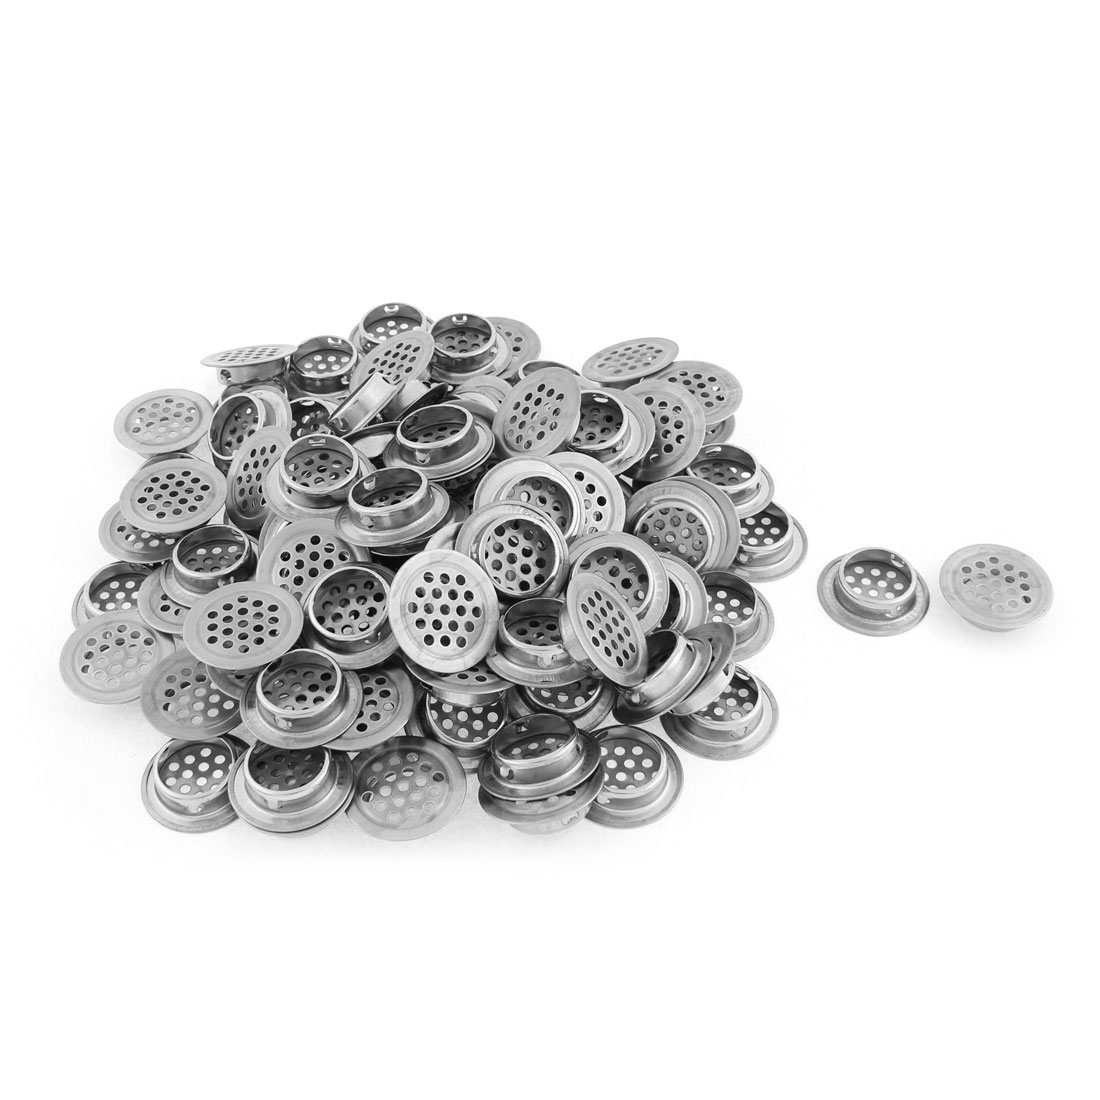 Perforated Round Mesh Air Vents Ventilation Louvers 25mm Bottom Dia 100 Pcs